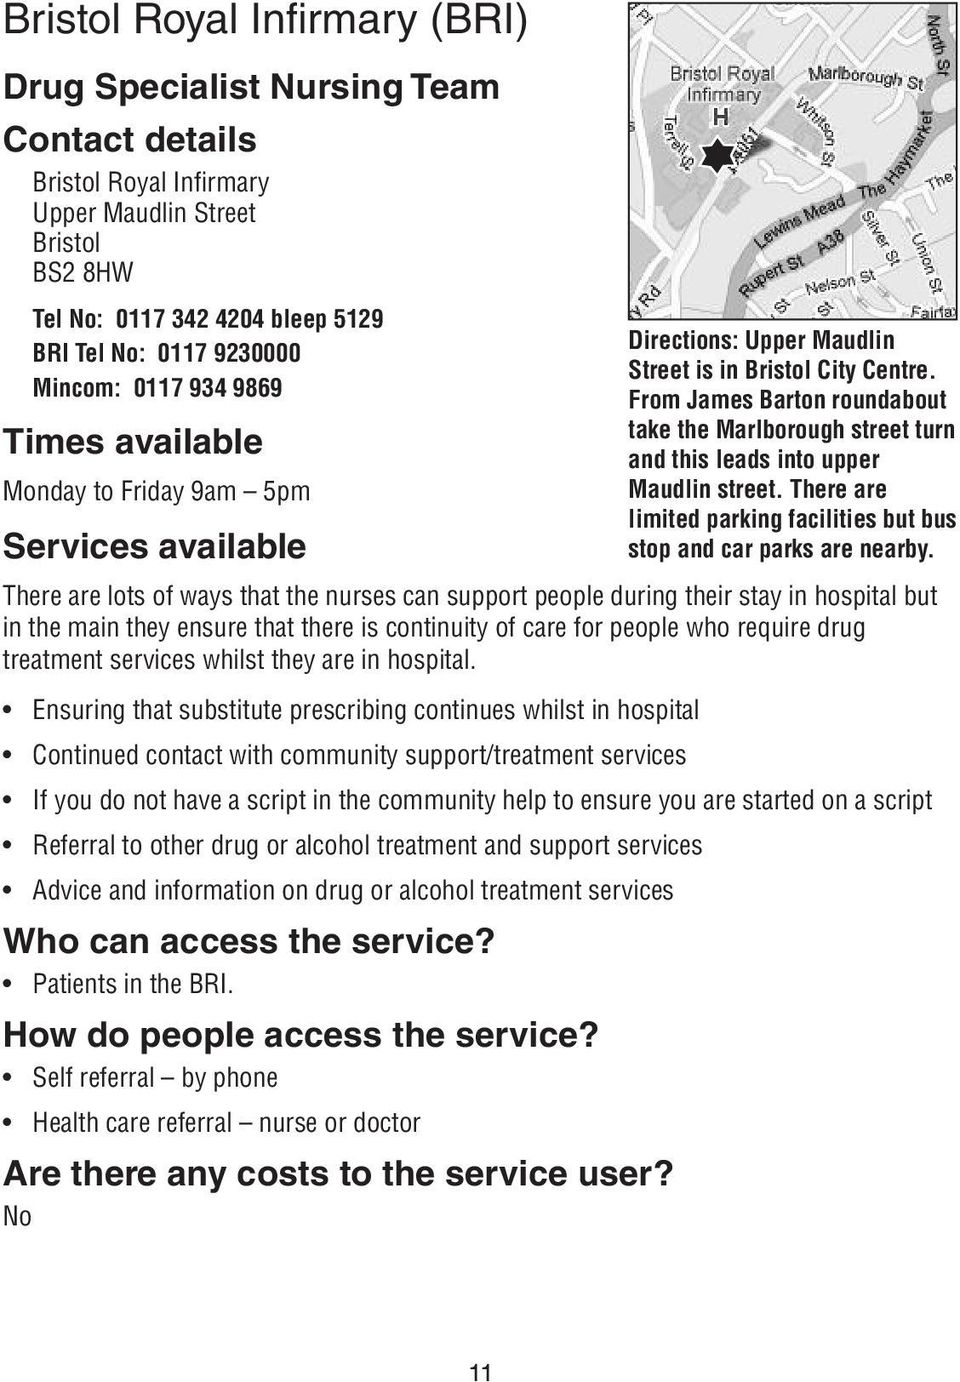 that there is continuity of care for people who require drug treatment services whilst they are in hospital.